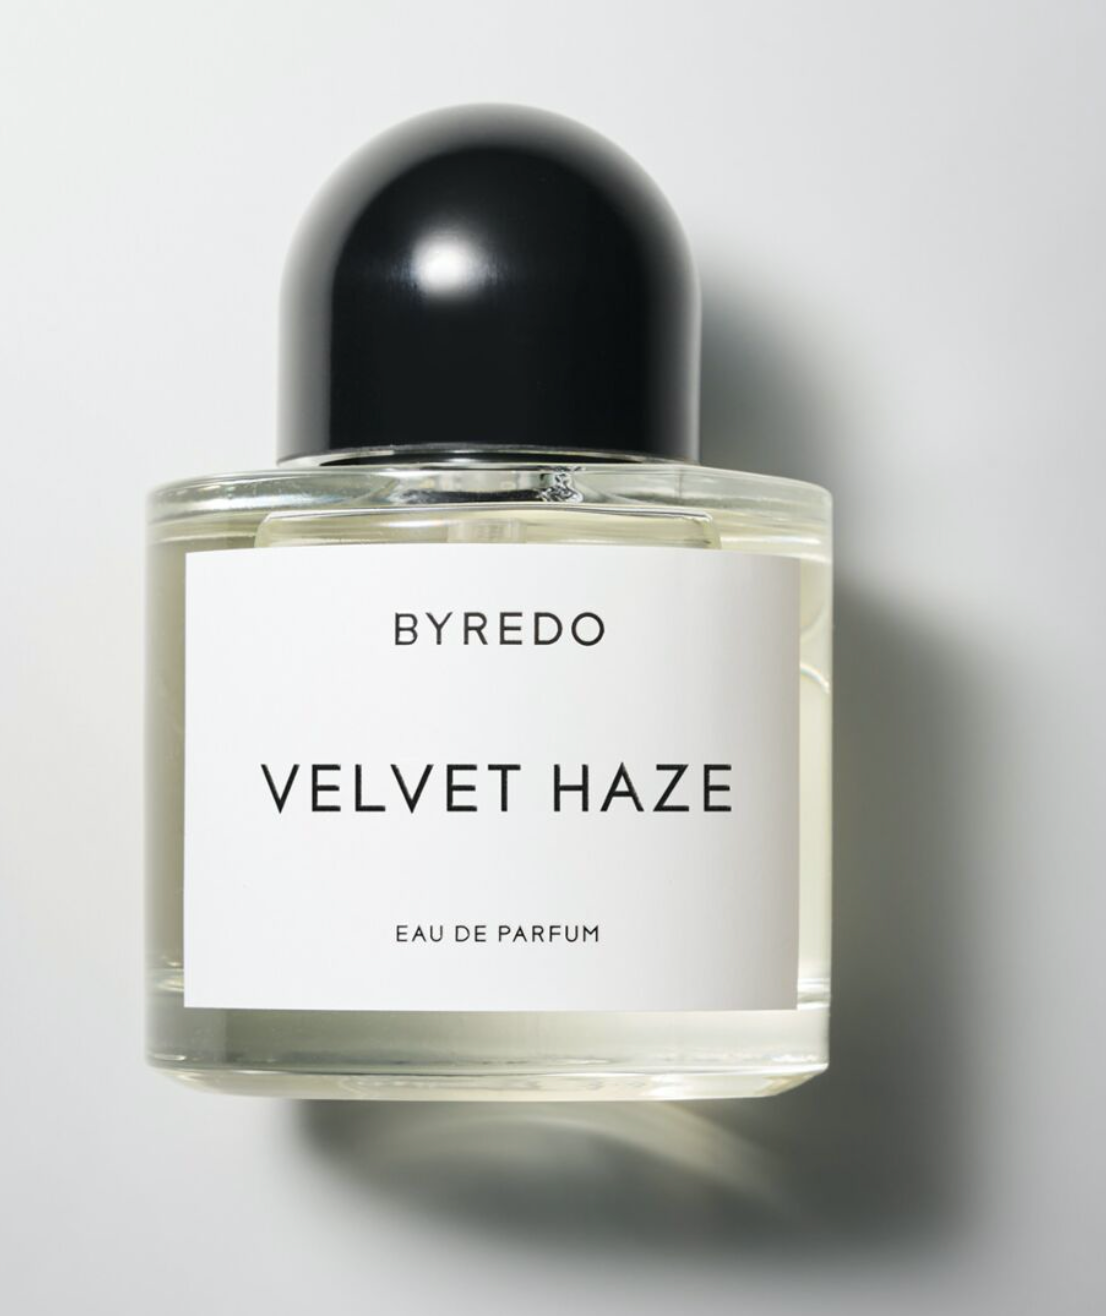 Byredo 100ml Edp Velvet Haze